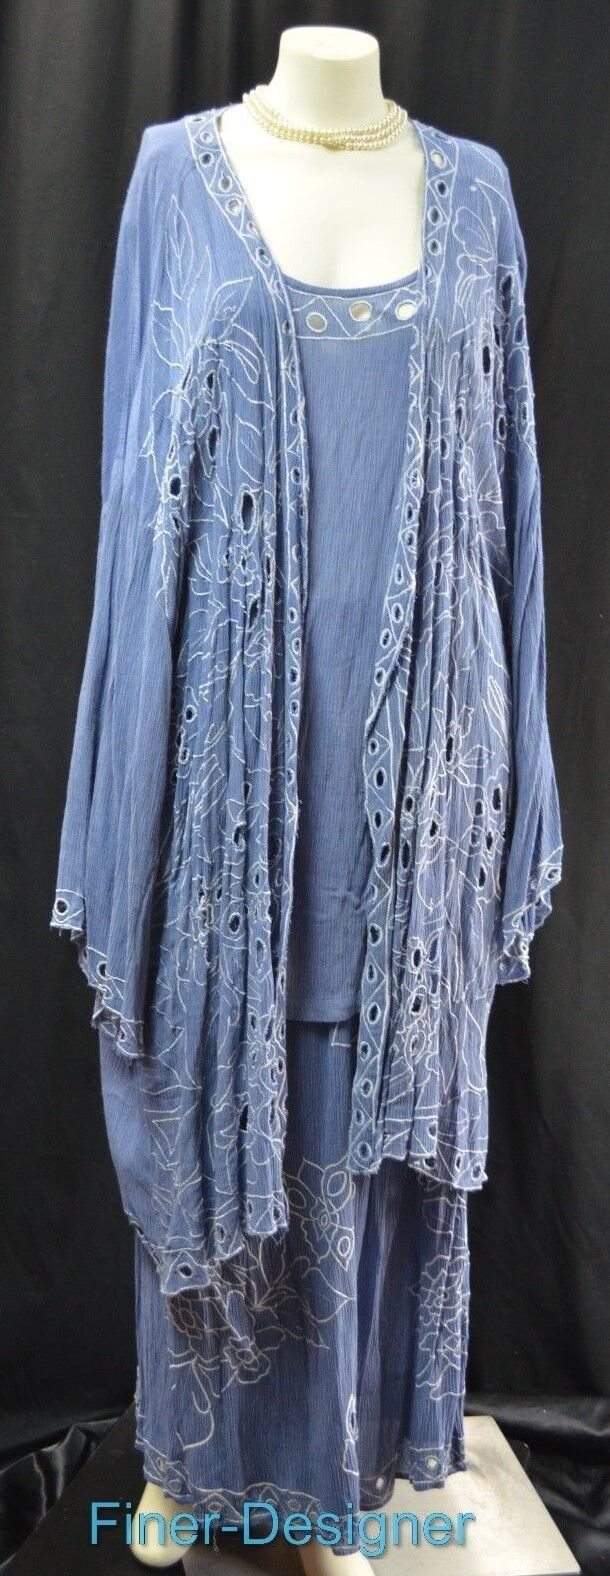 Carole Liz maxi skirt suit shrug cami top embellish 3PC set stretch 4X NWT  140